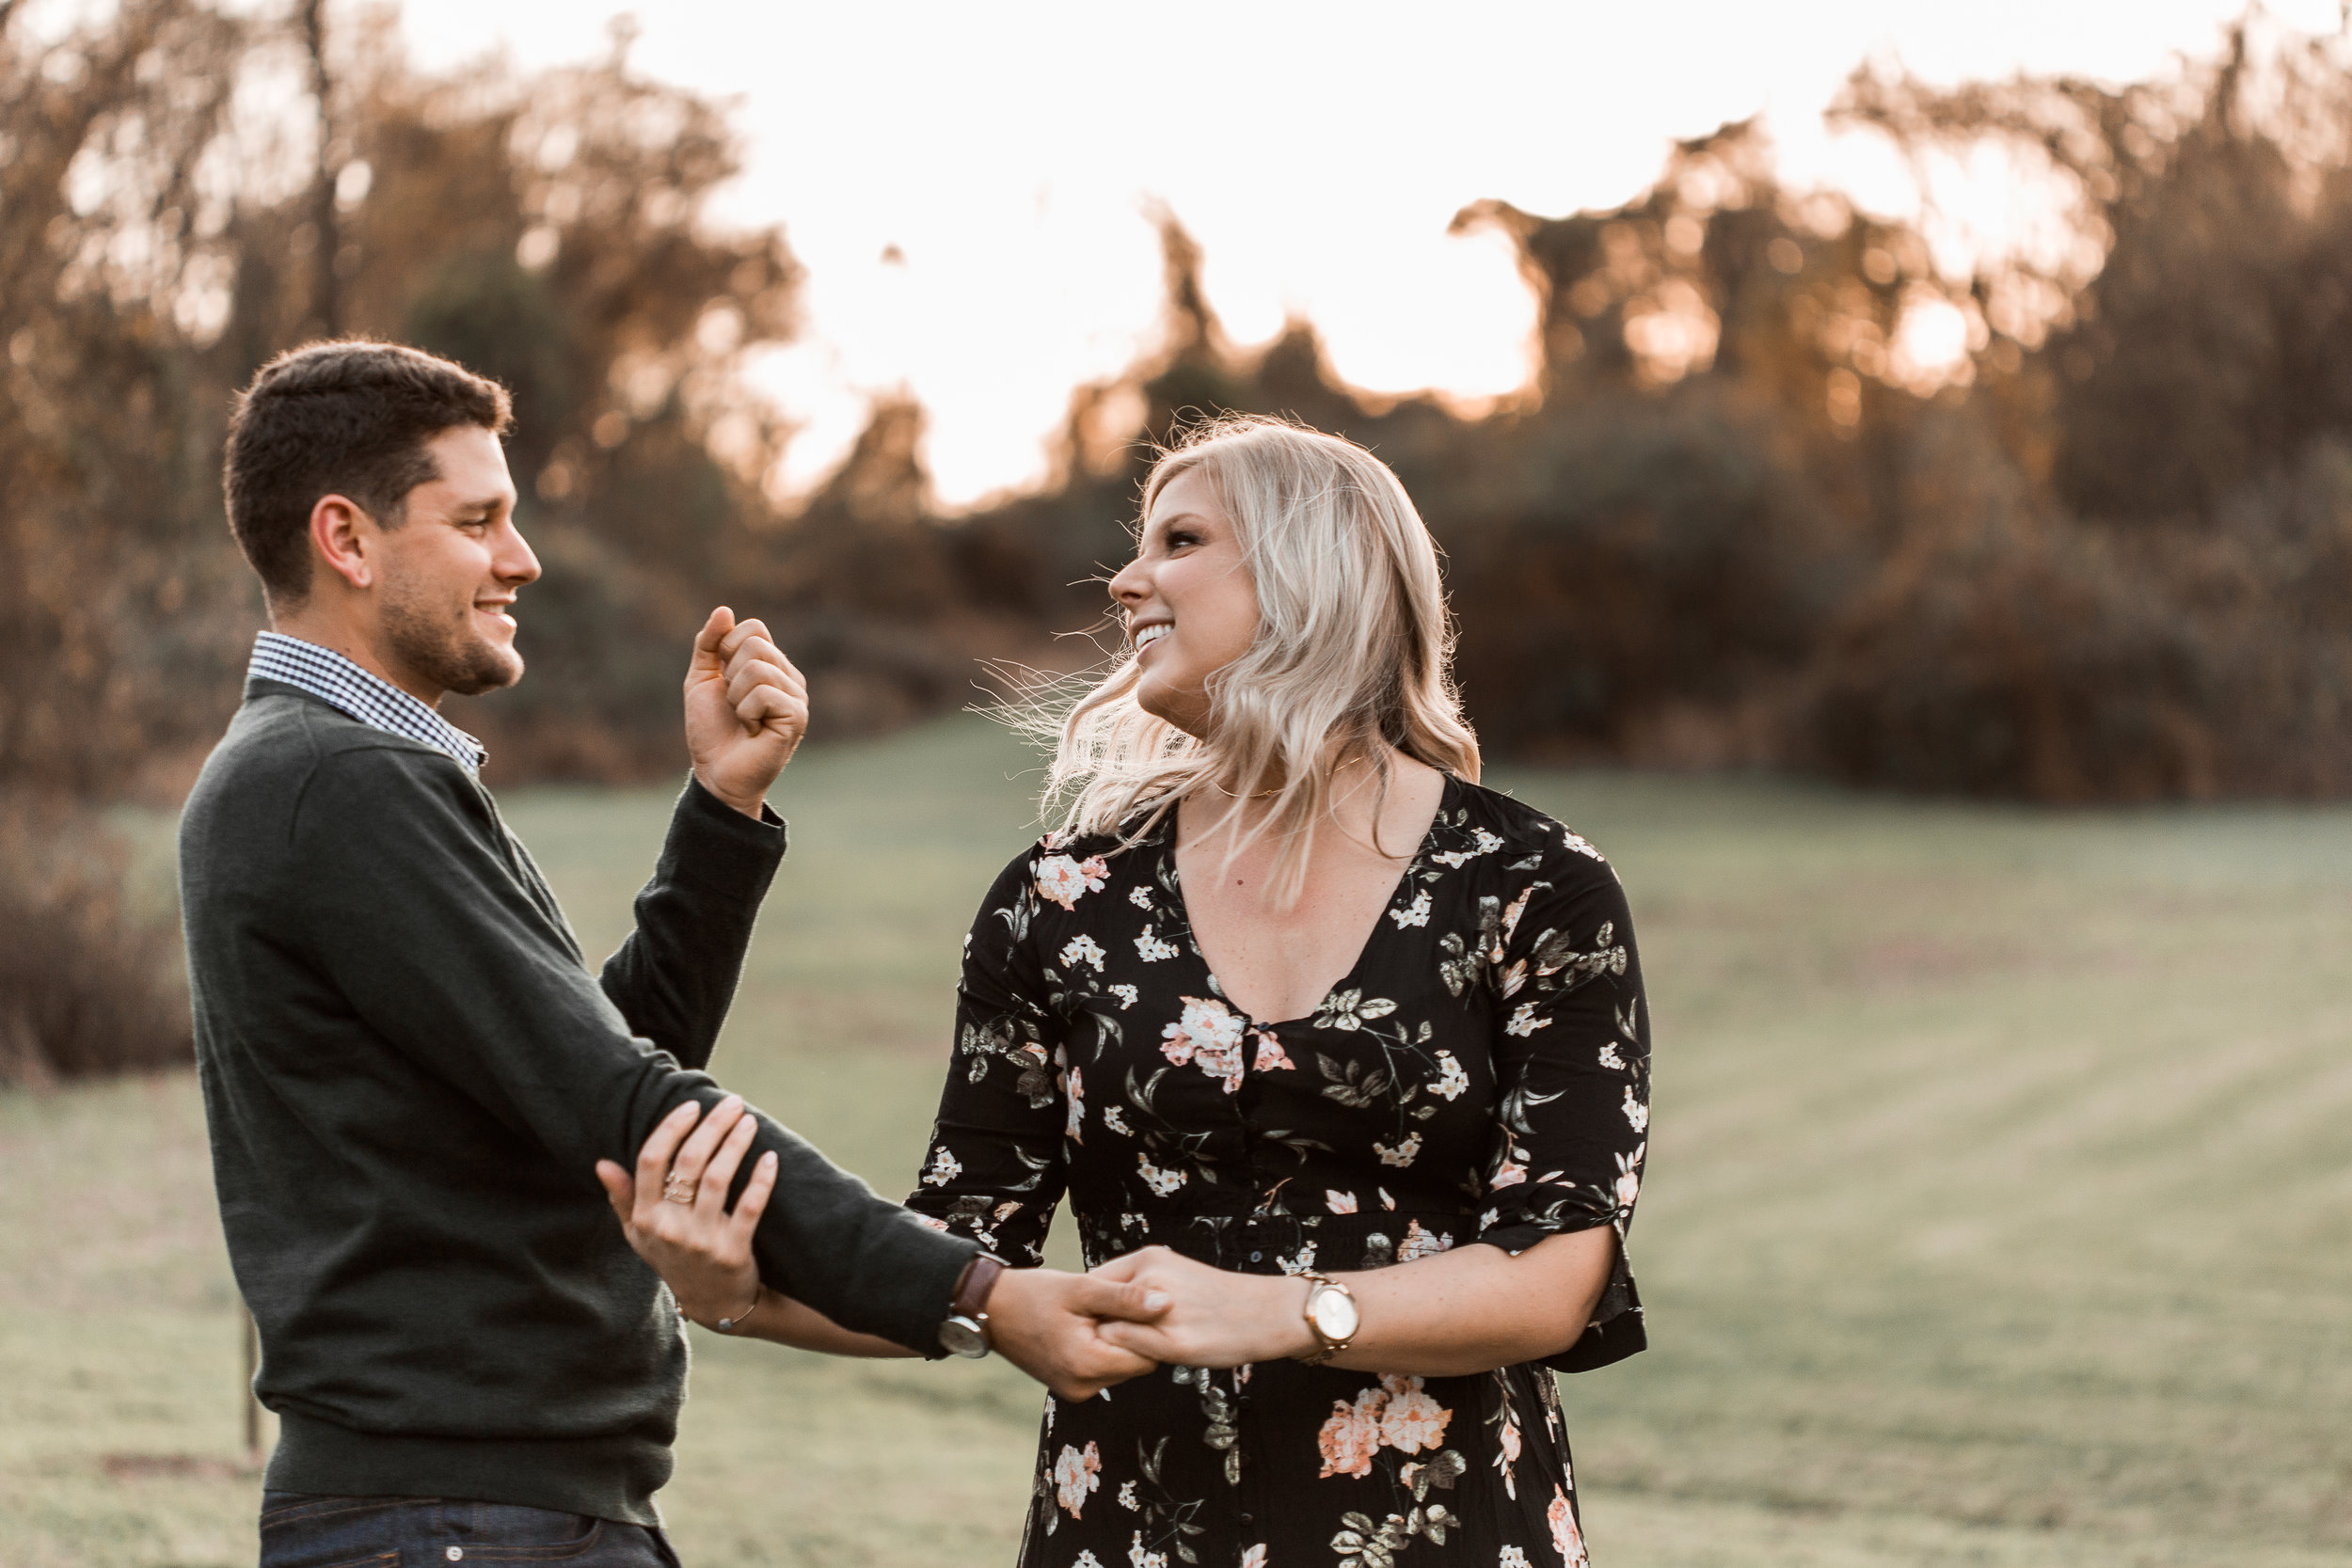 nicole-daacke-photography-carefree-bohemian-lancaster-pa-pennsylvania-engagement-photos-engagement-session-golden-sunset-adventure-session-in-lancaster-pa-lancaster-pa-outdoor-wedding-photographer-10.jpg